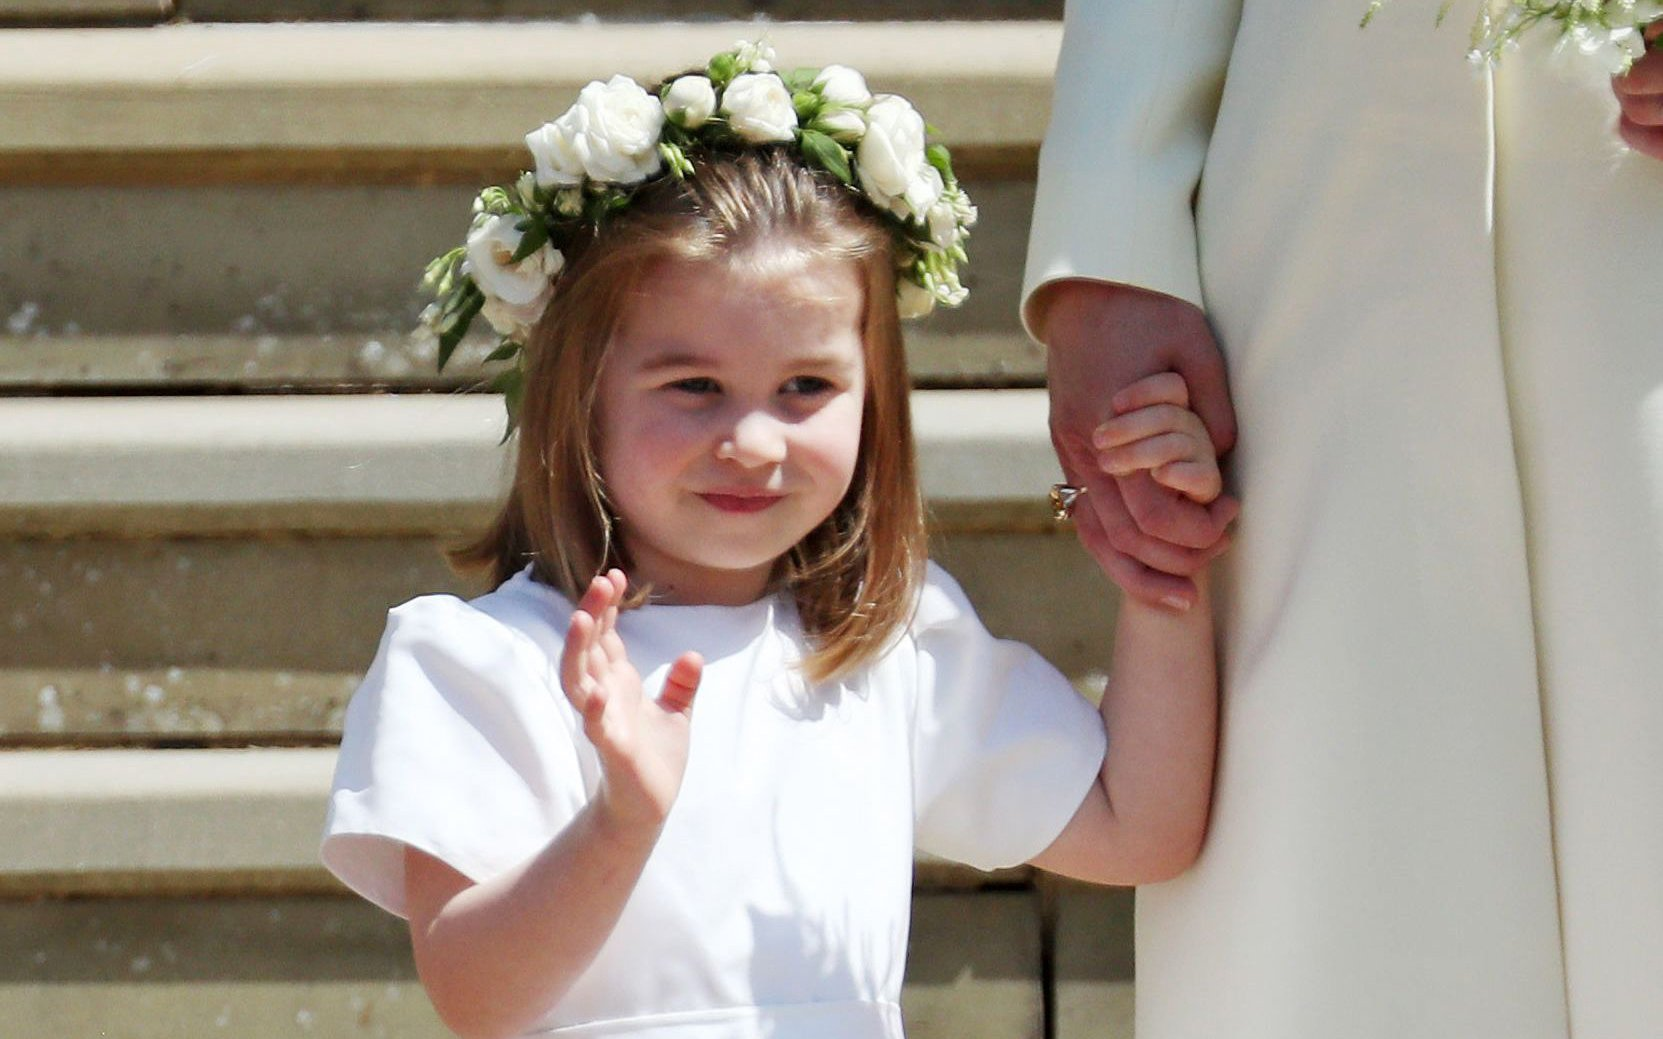 Princess Charlotte of Cambridge gives a wave at the #RoyalWedding https://t.co/Oqw4xZ724f https://t.co/oZjjjlX4xa